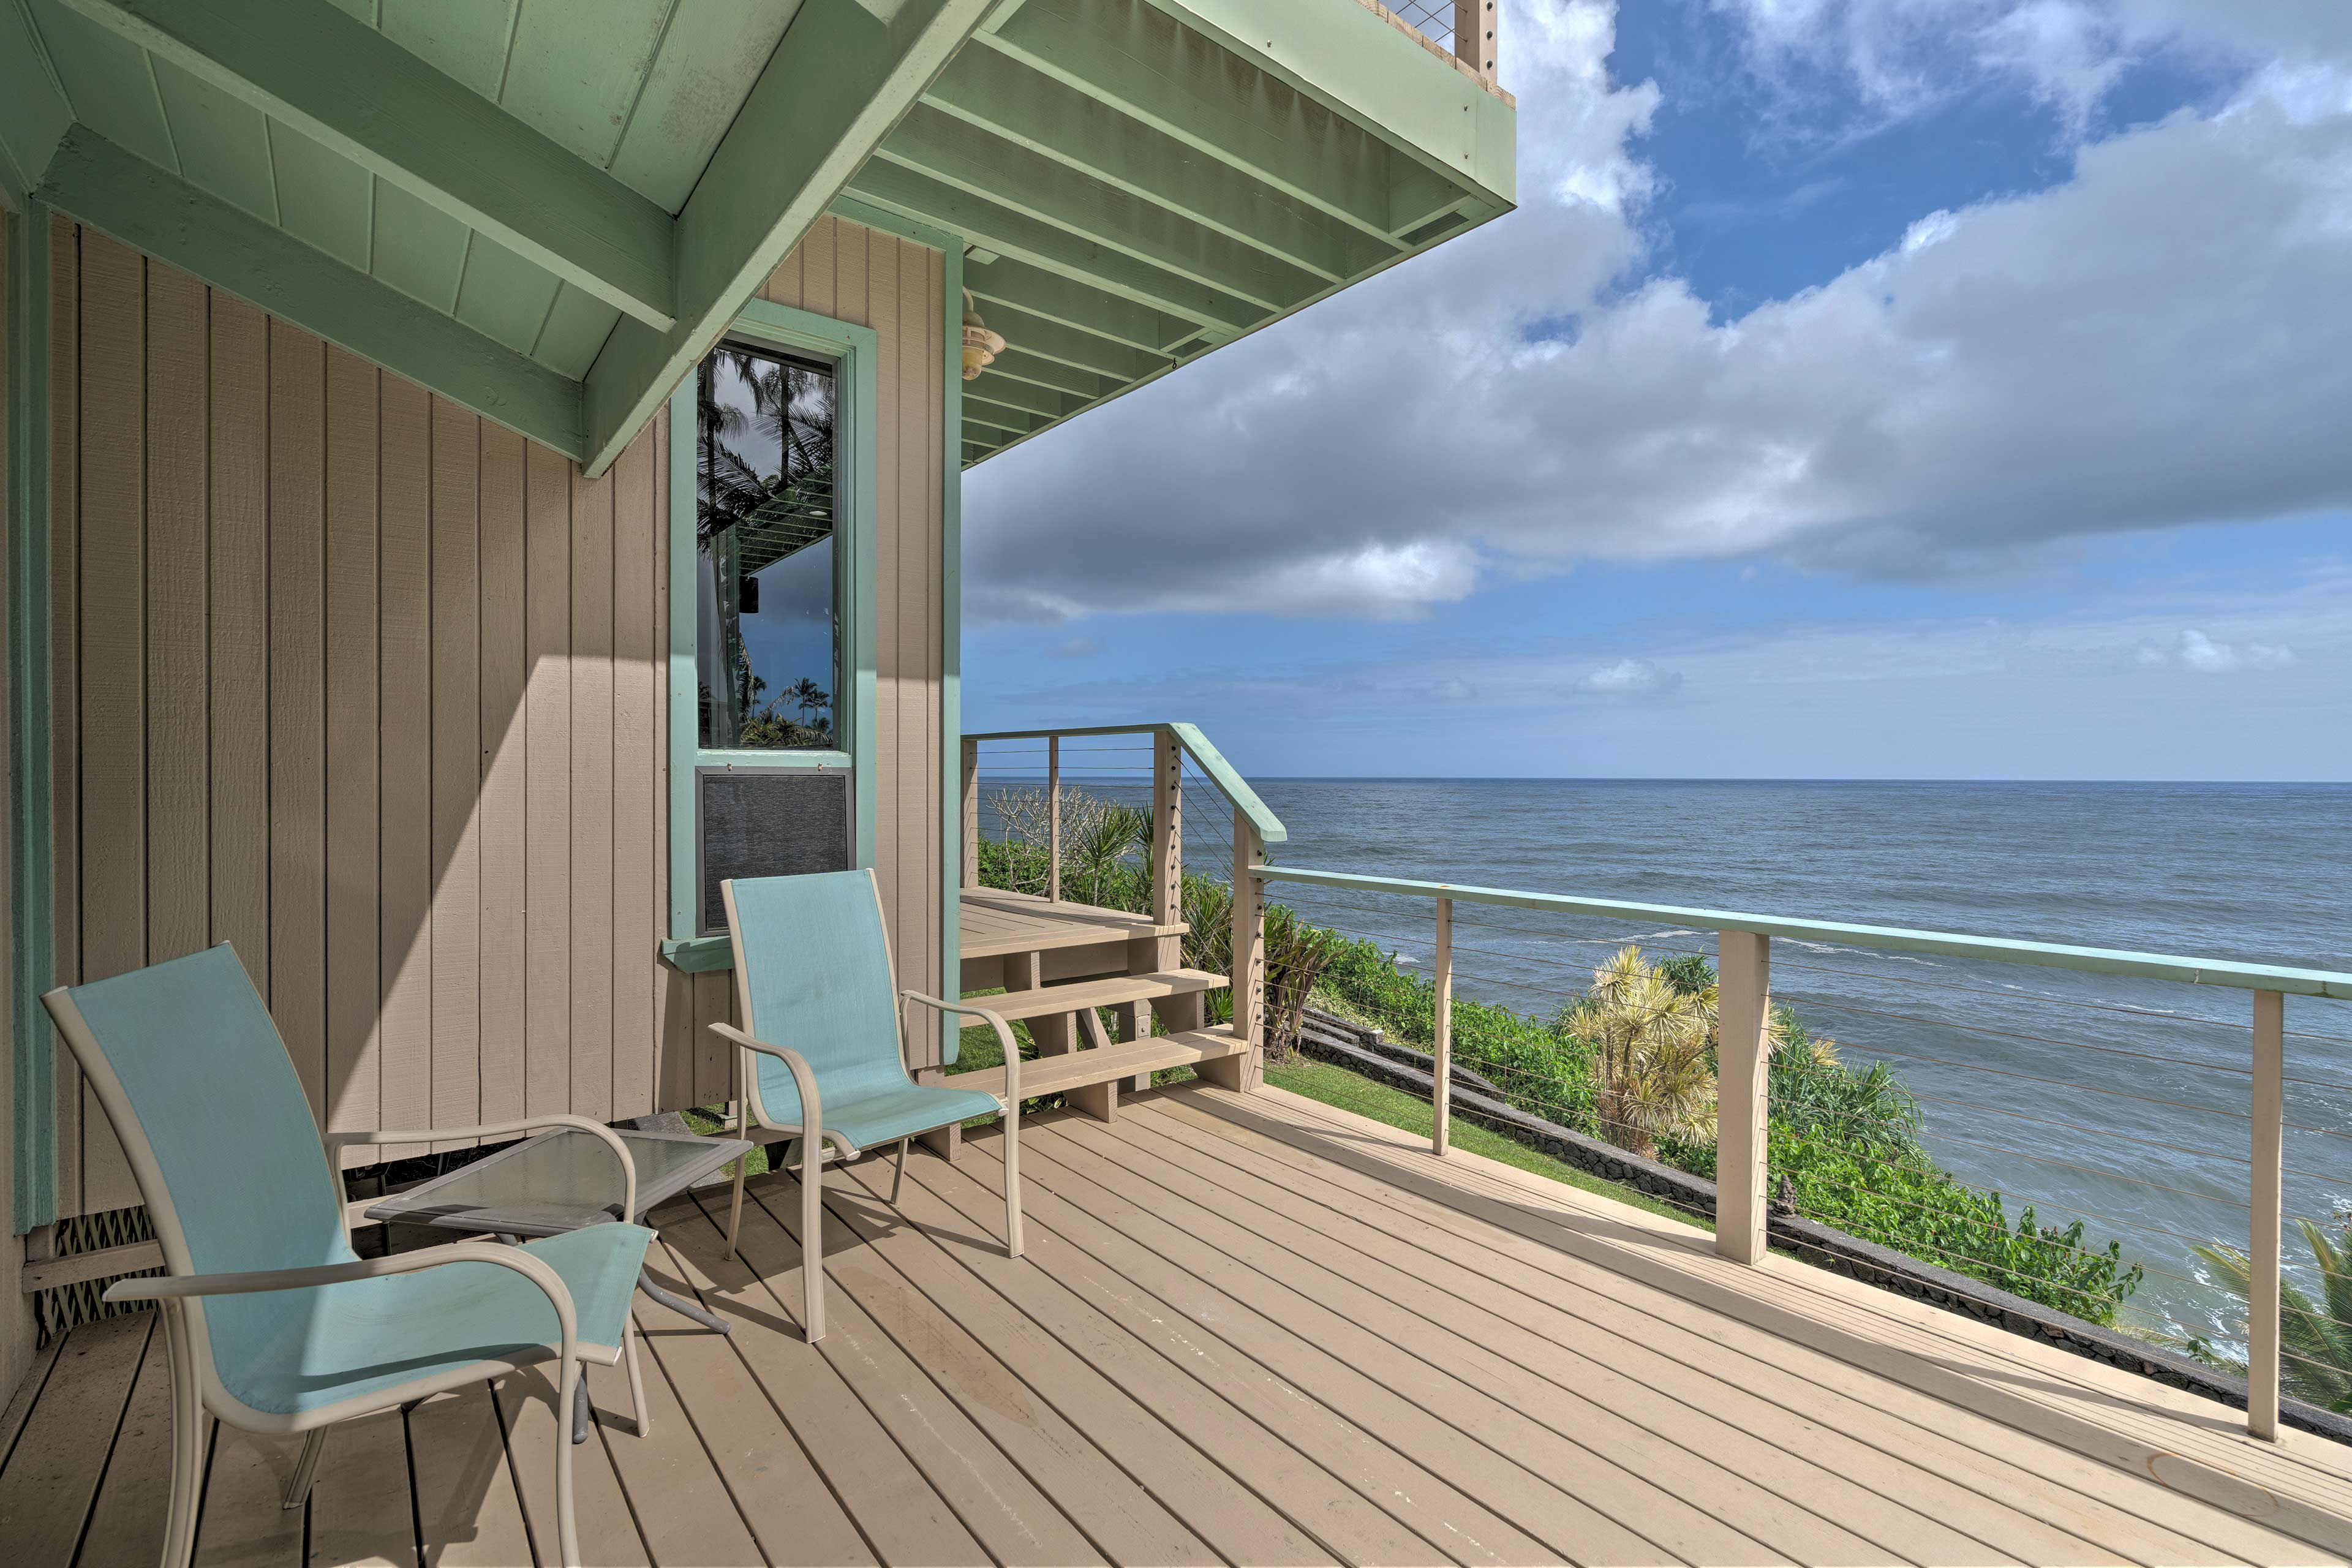 You'll be blown away by the views when you step out onto the deck.